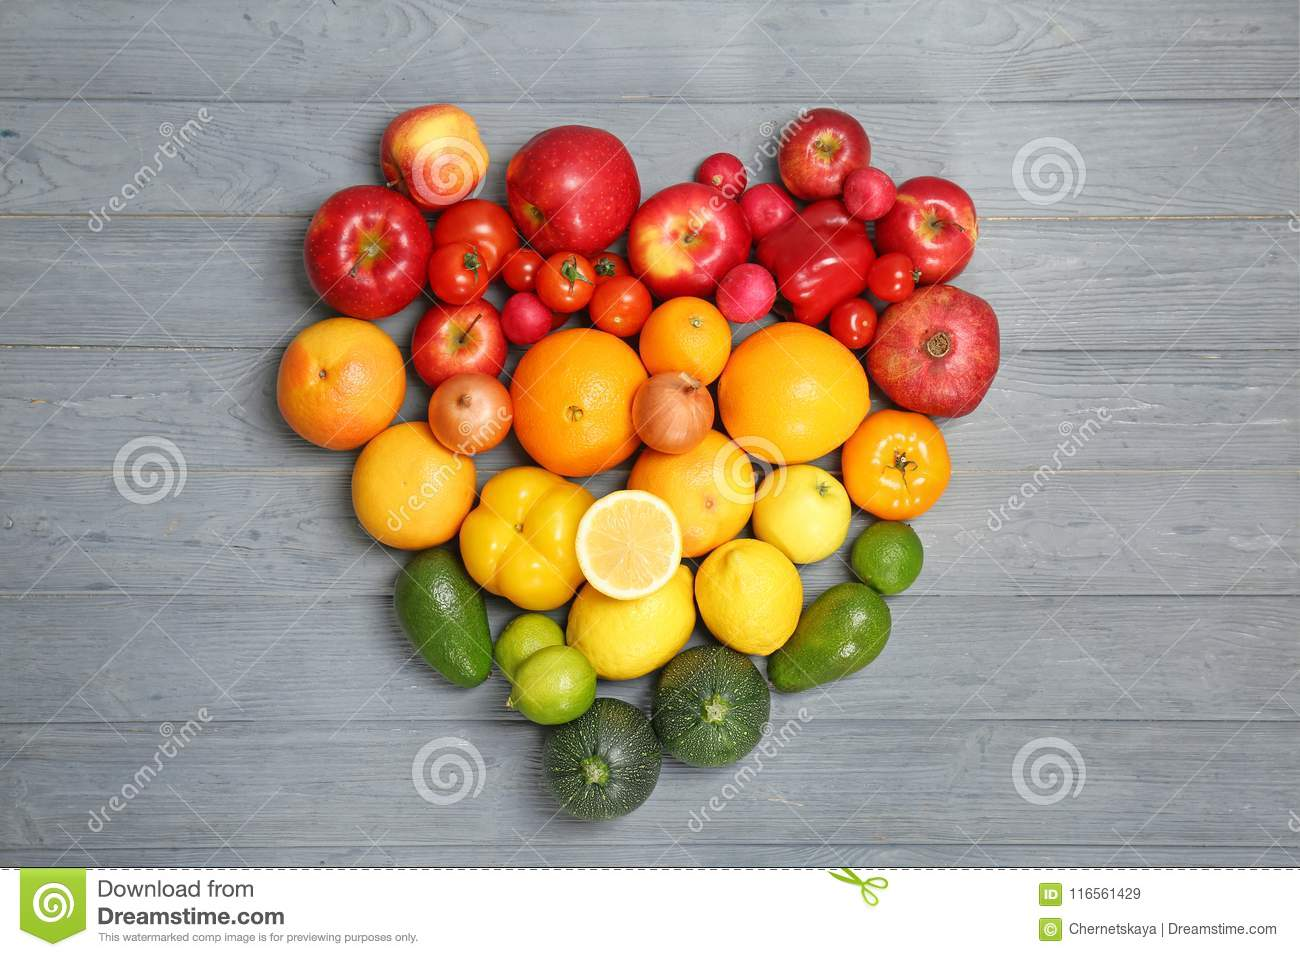 Heart made of ripe fruits and vegetables